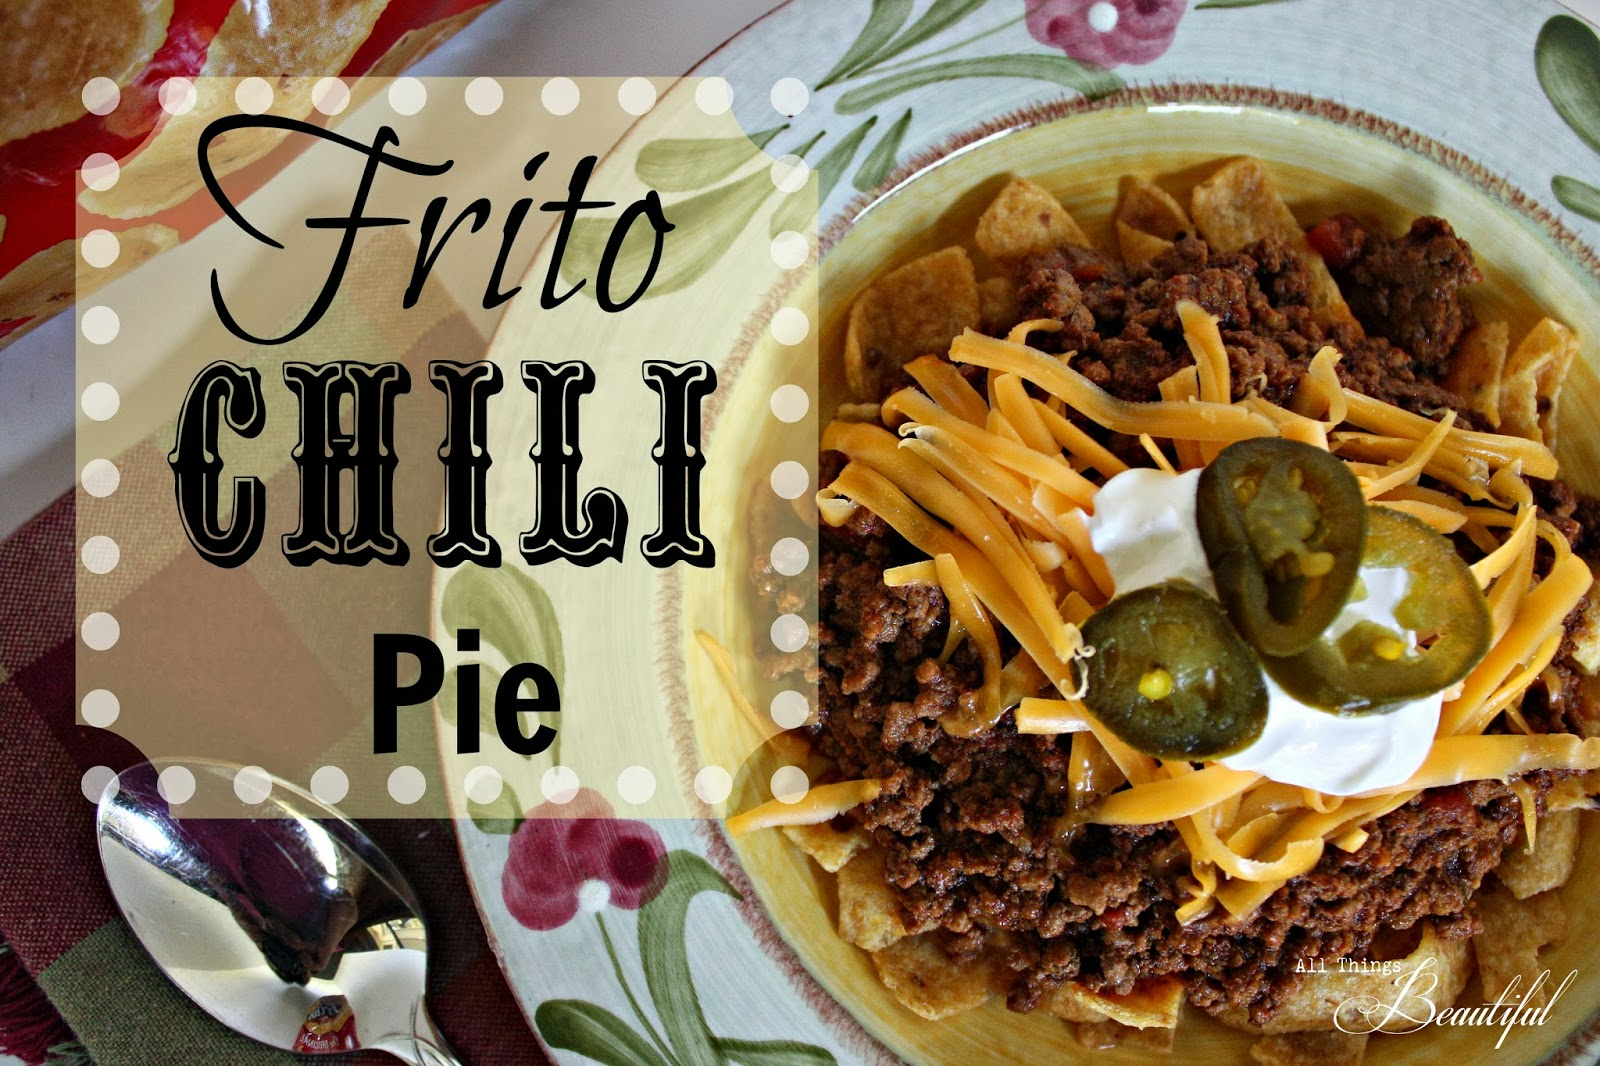 ... frito pie frito chili pie kimchi frito pie frito pie with 1 hour texas